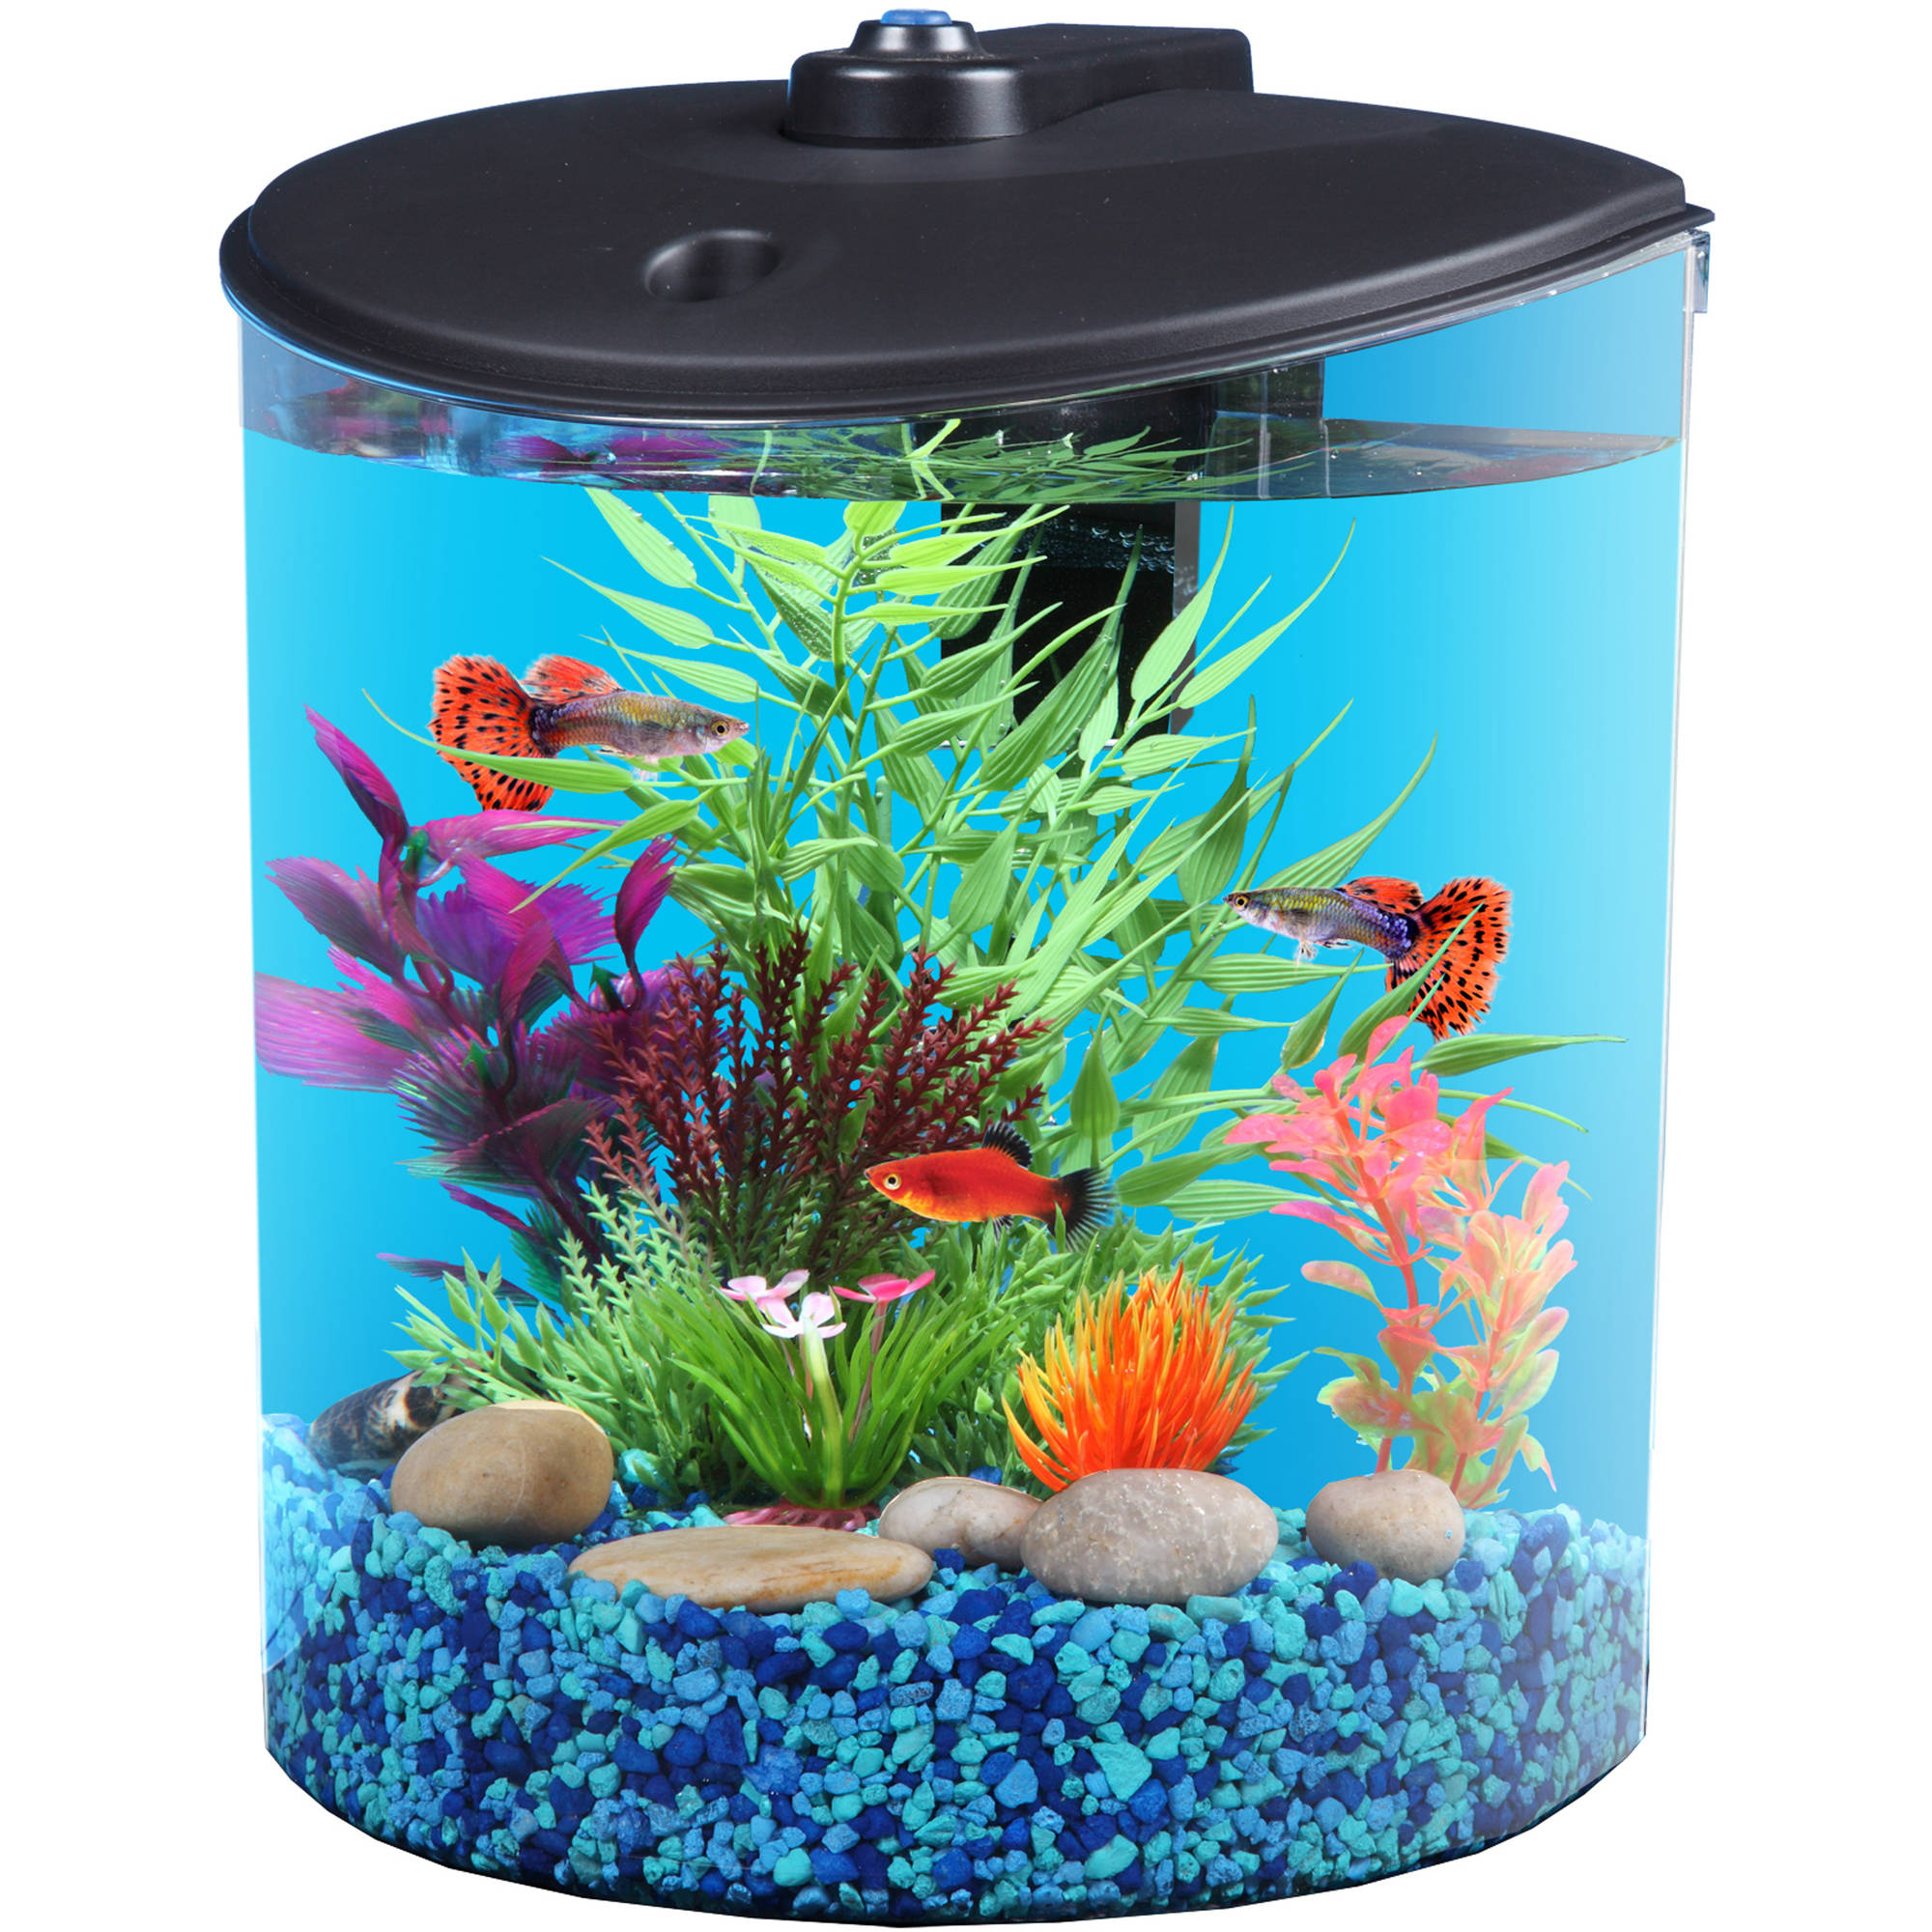 Hawkeye 1.5 gal 180' View Aquarium Kit with LED Light and Power Filter by KollerCraft (Hawkeye Intl)